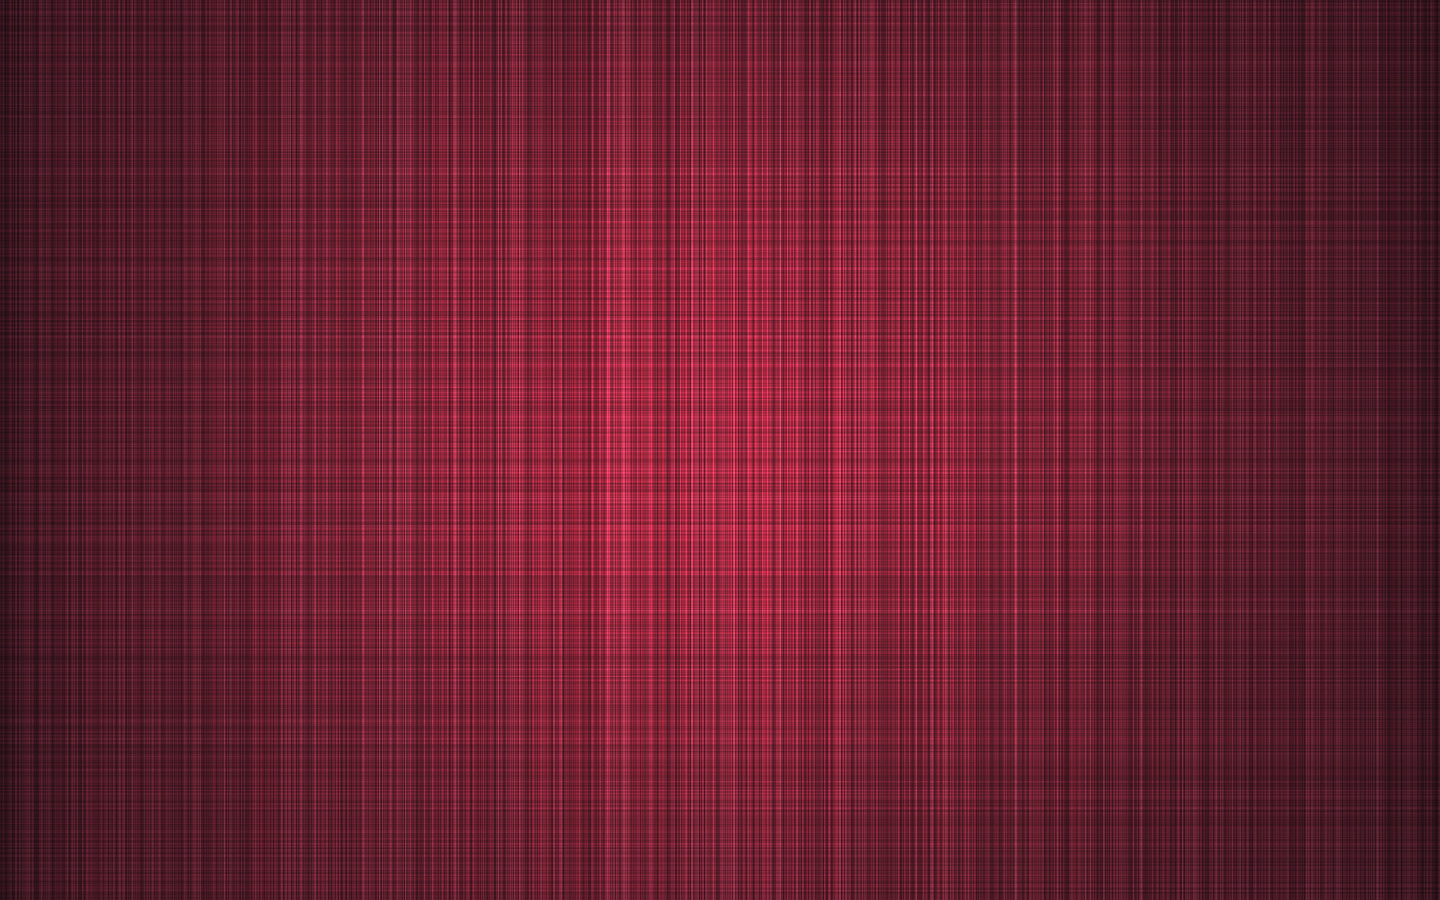 red-lines-abstract-pattern-4k-dz.jpg